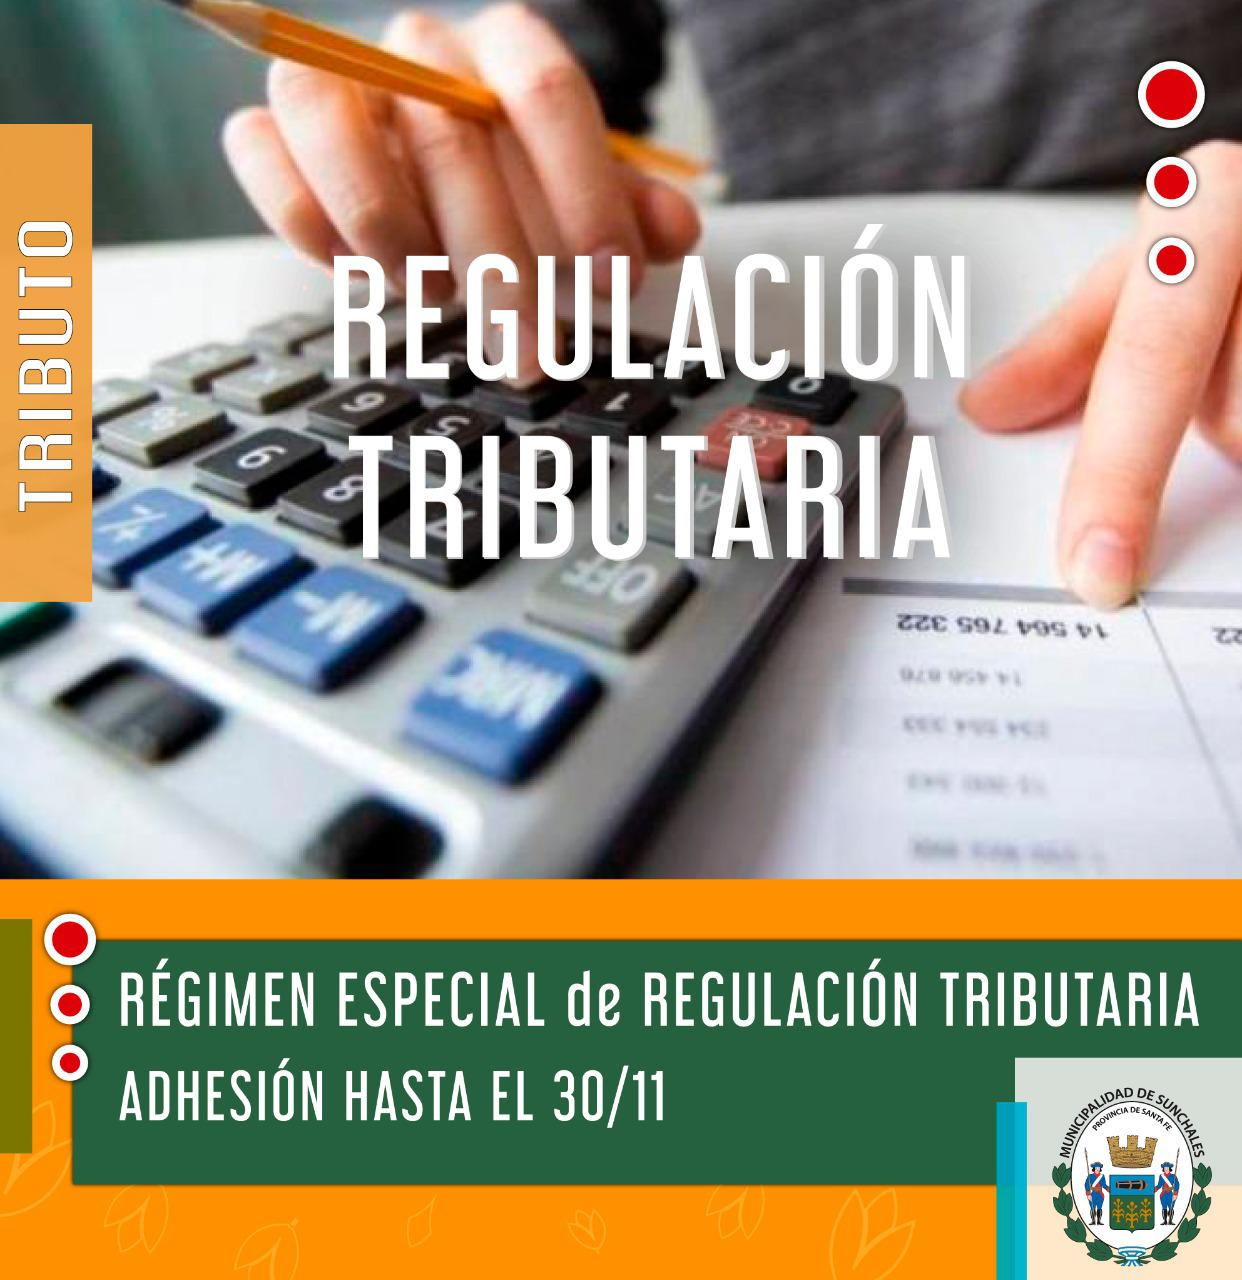 Regulación tributaria